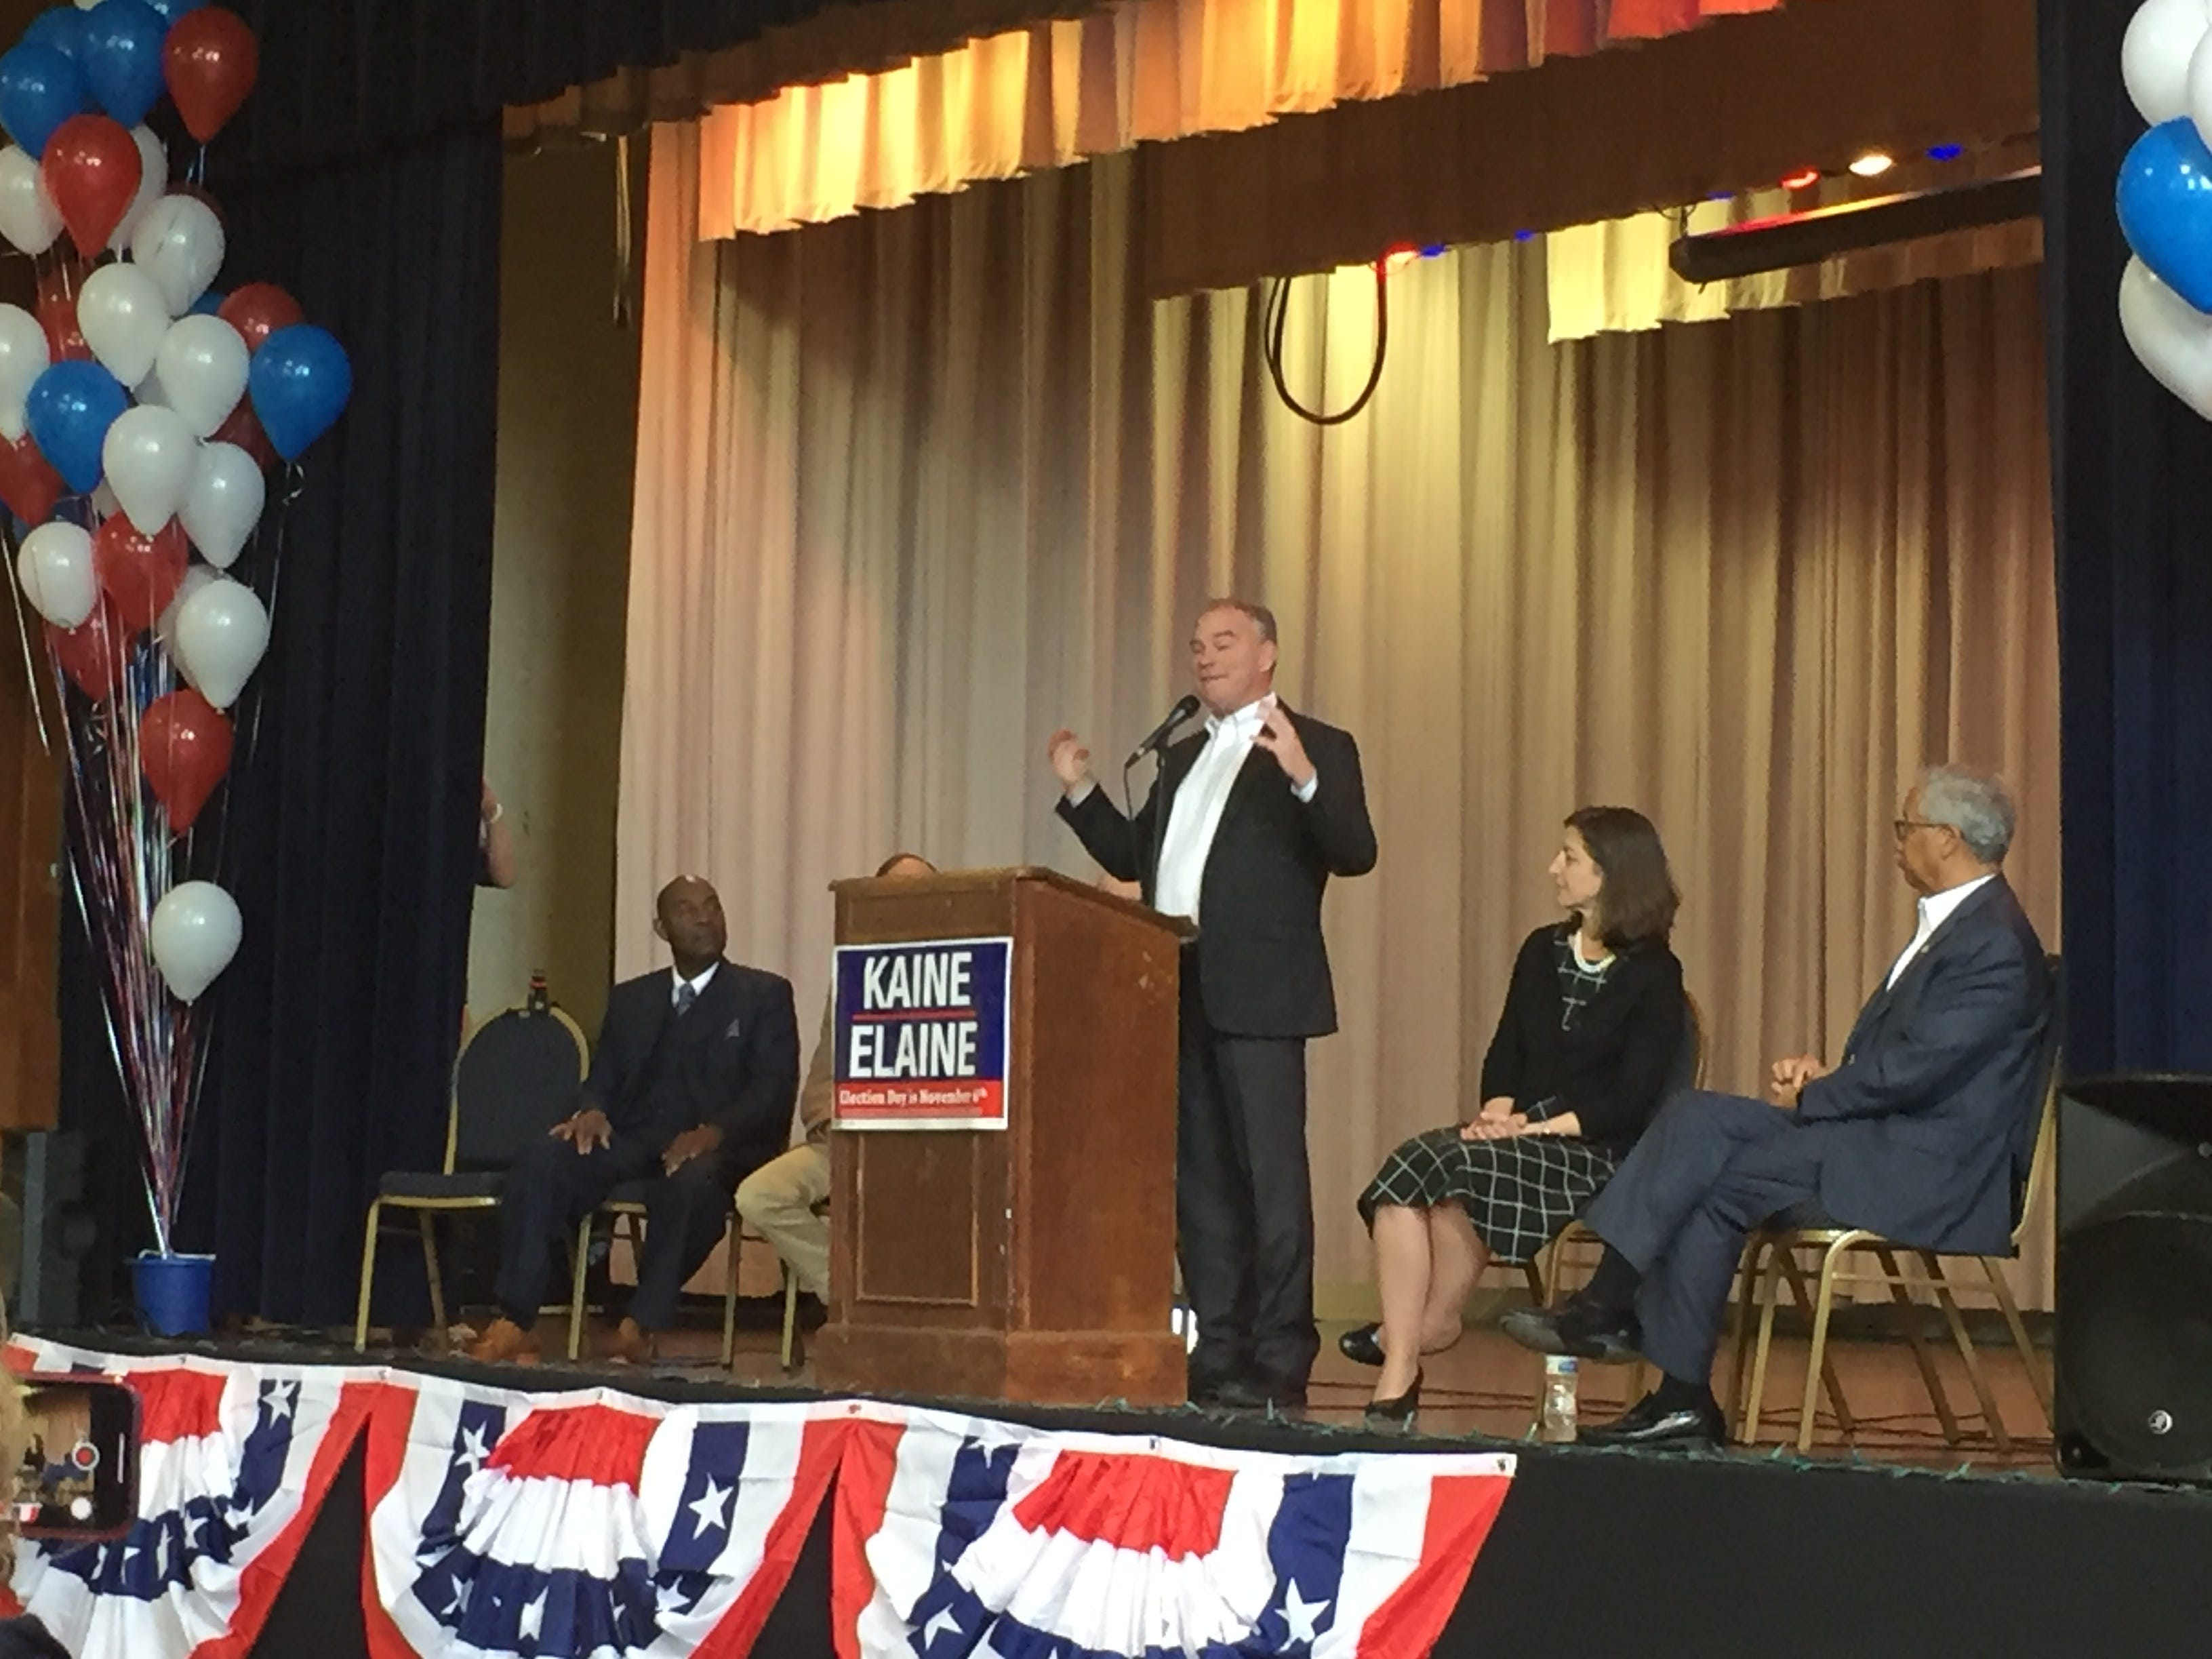 Sen. Tim Kaine speaks to the gathering at the rally Oct. 21 at Mary N. Smith Cultural Enrichment Center in Accomac.